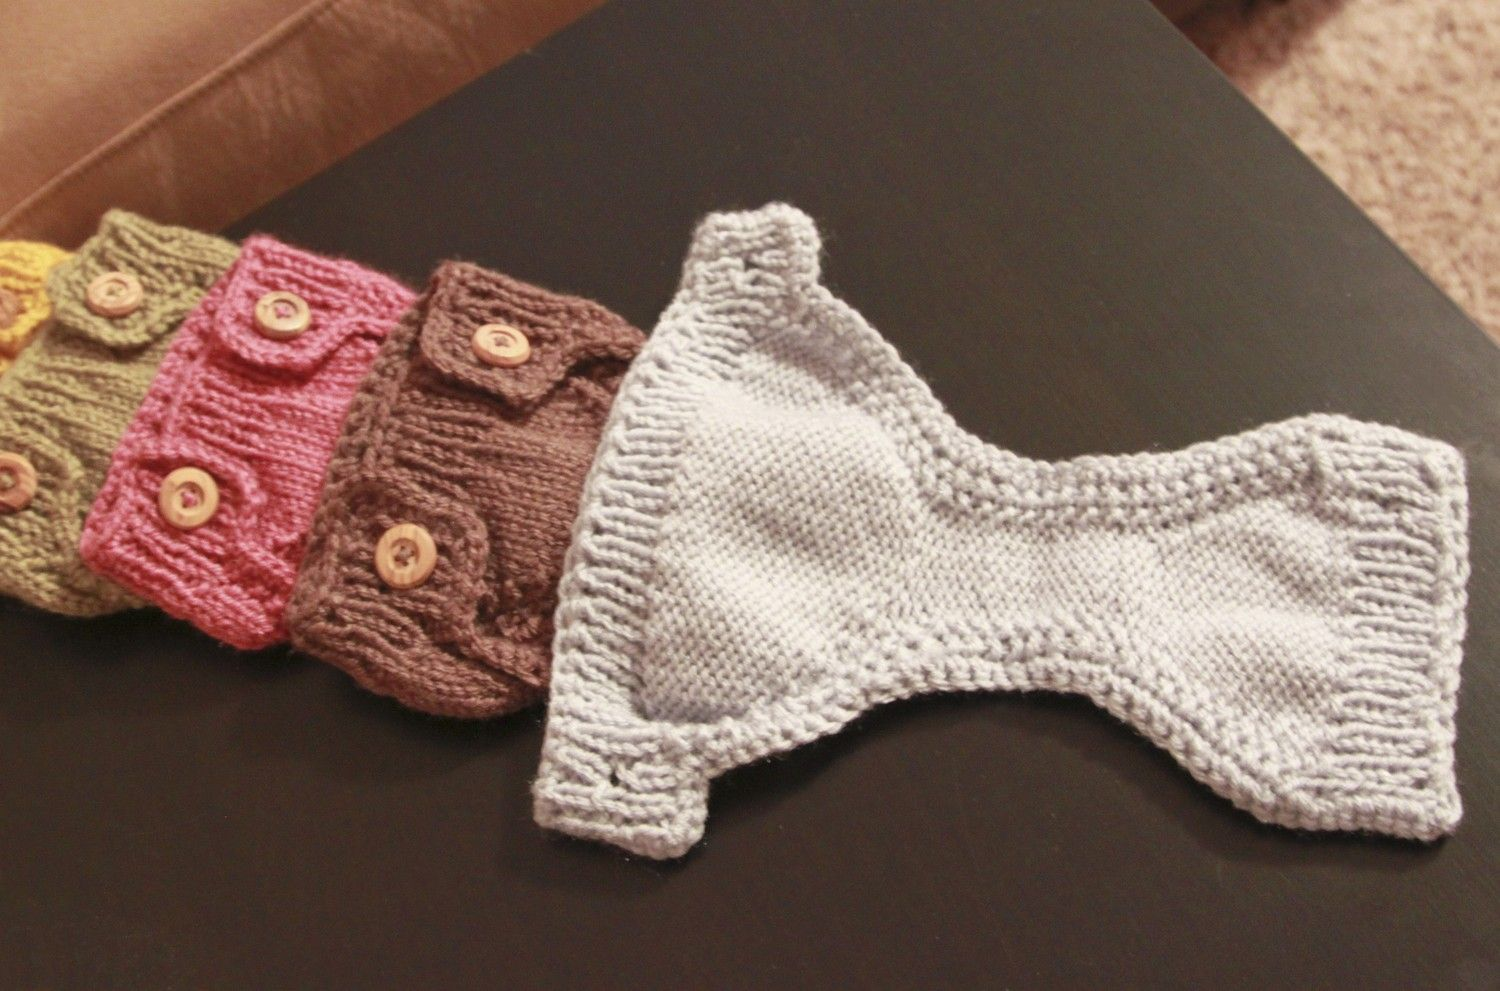 Baby Diaper Cover Knitting Pattern | Knitting patterns, Diapers and ...